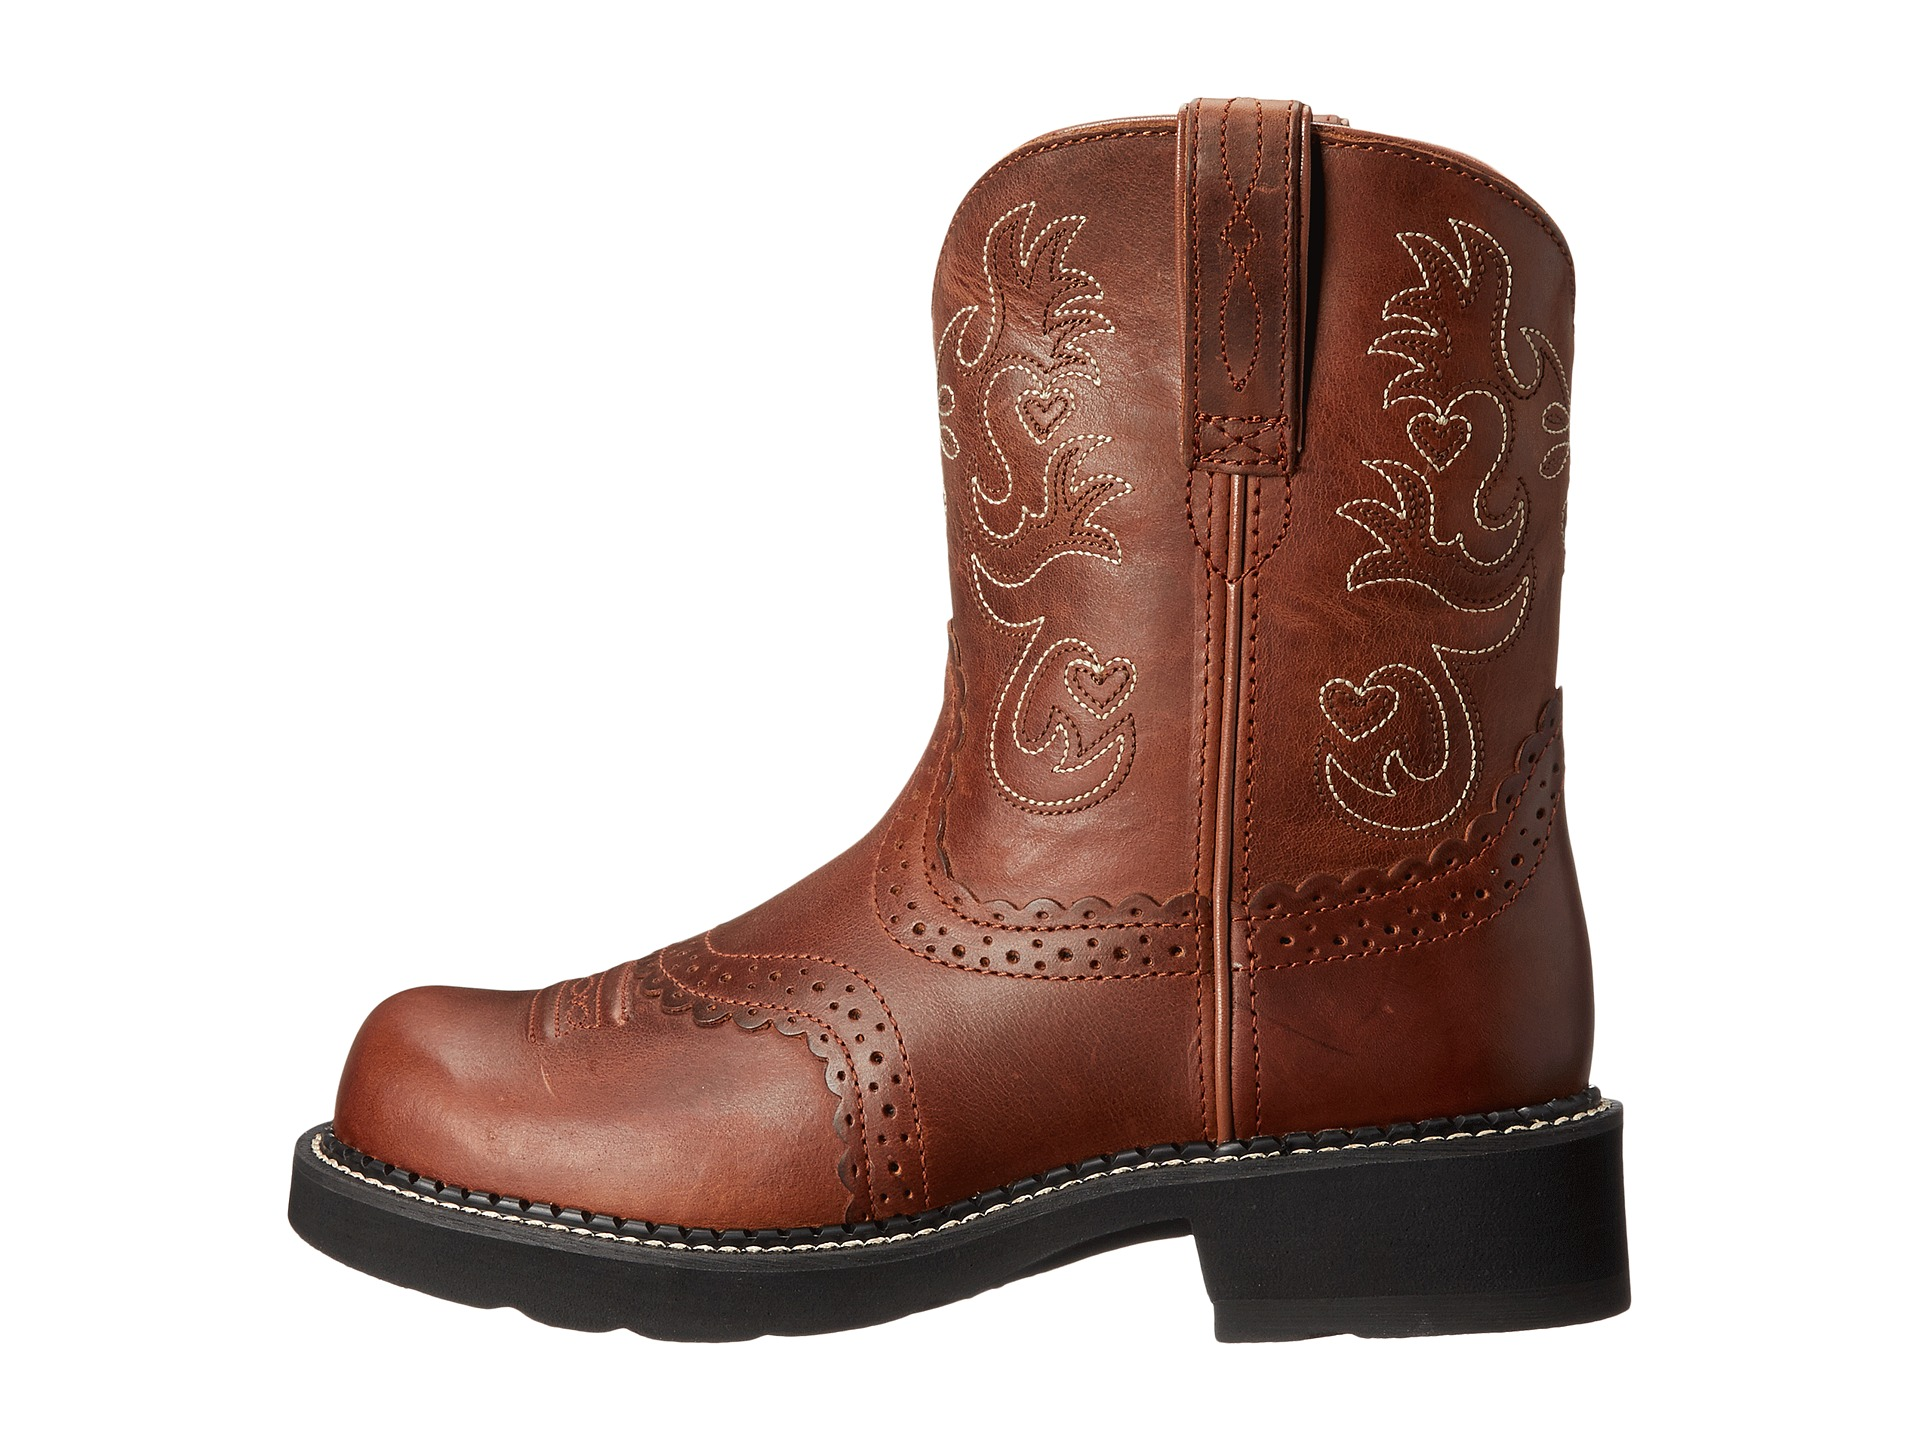 Ariat Fatbaby - Zappos.com Free Shipping BOTH Ways